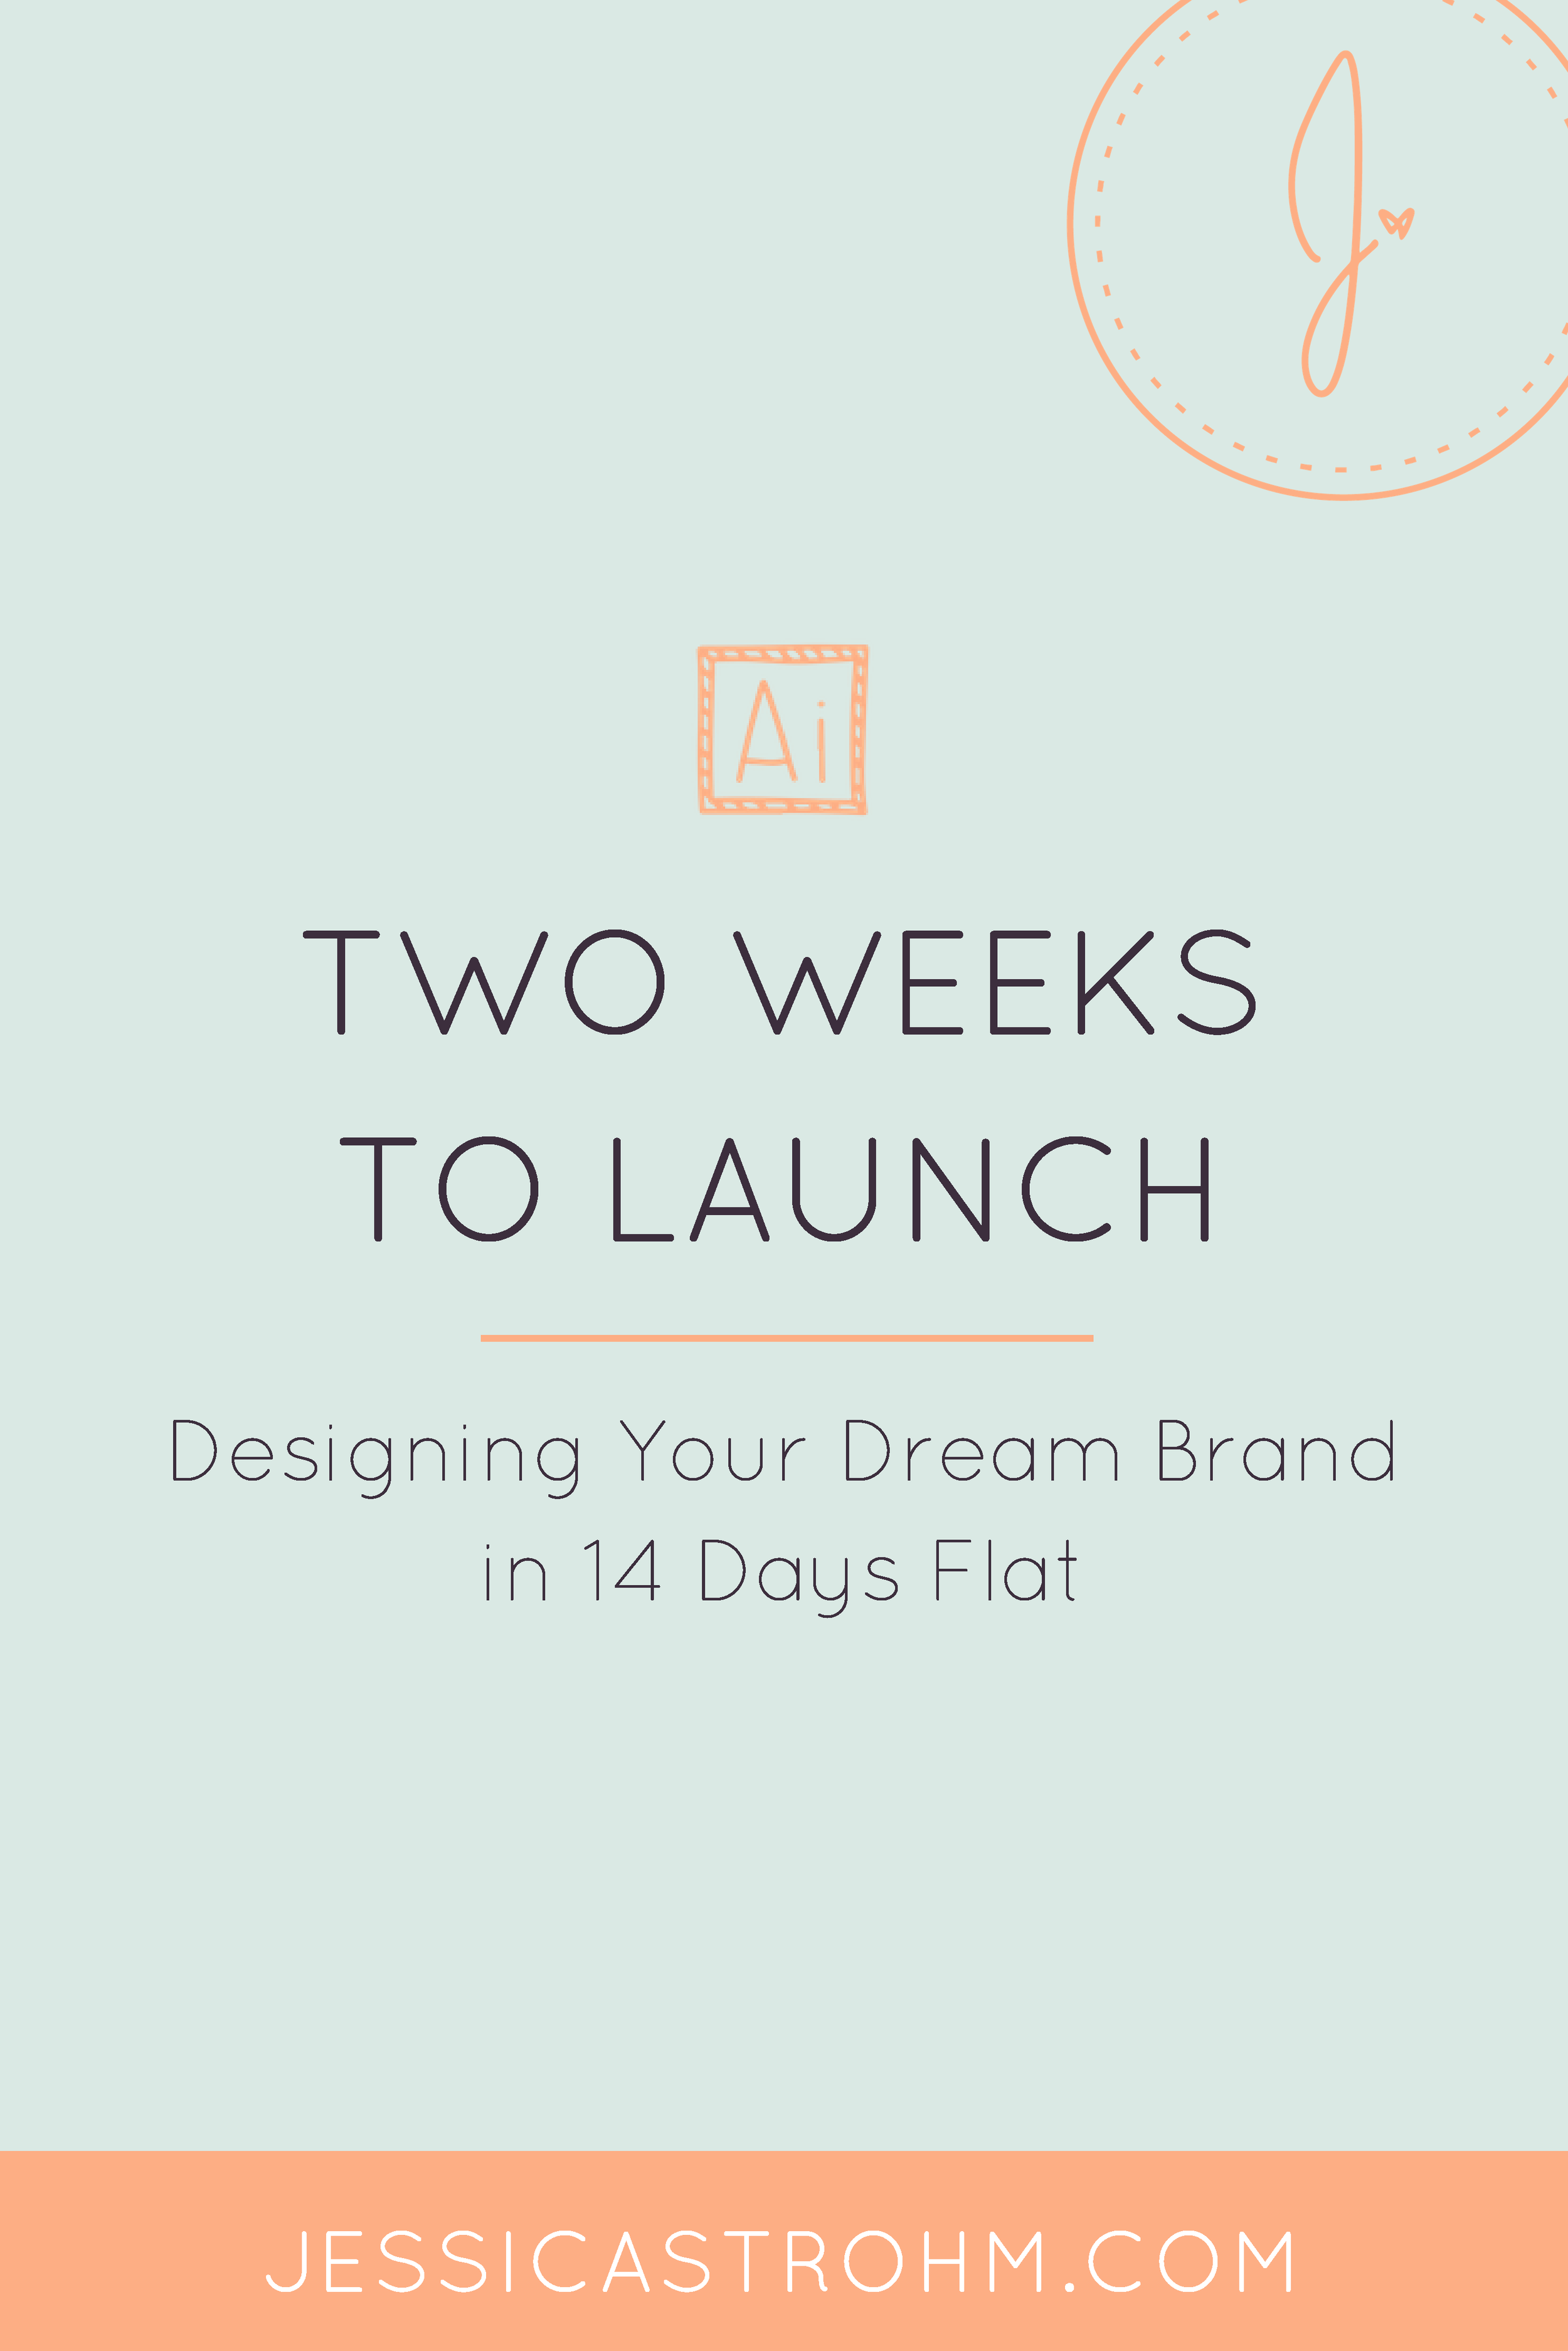 How you can work with a designer to create your dream brand and website in 14 days.